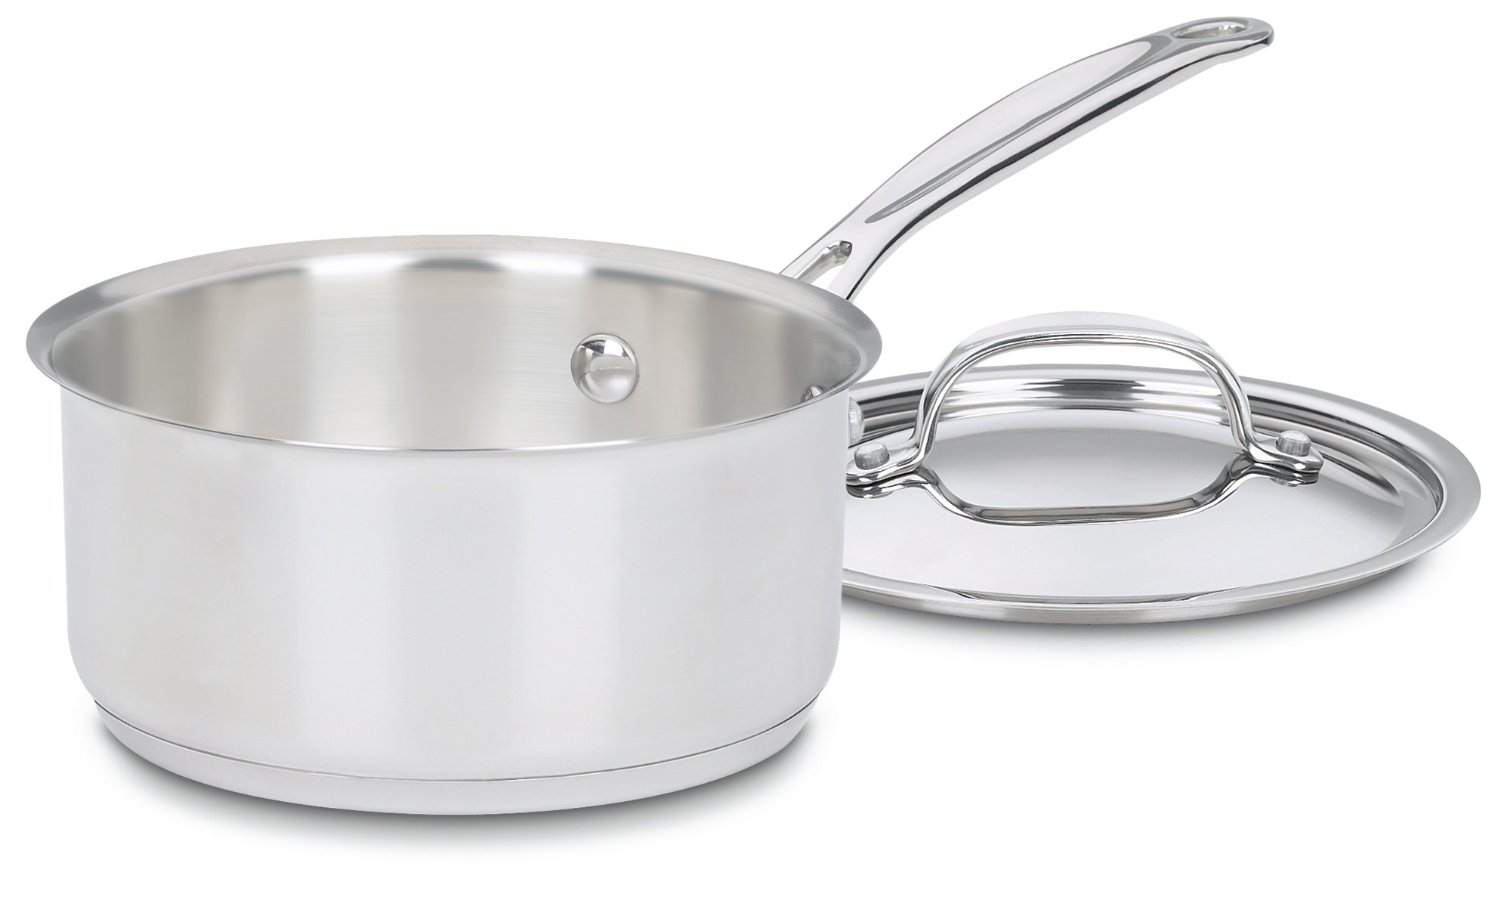 1-1/2-Quart Saucepan with Cover